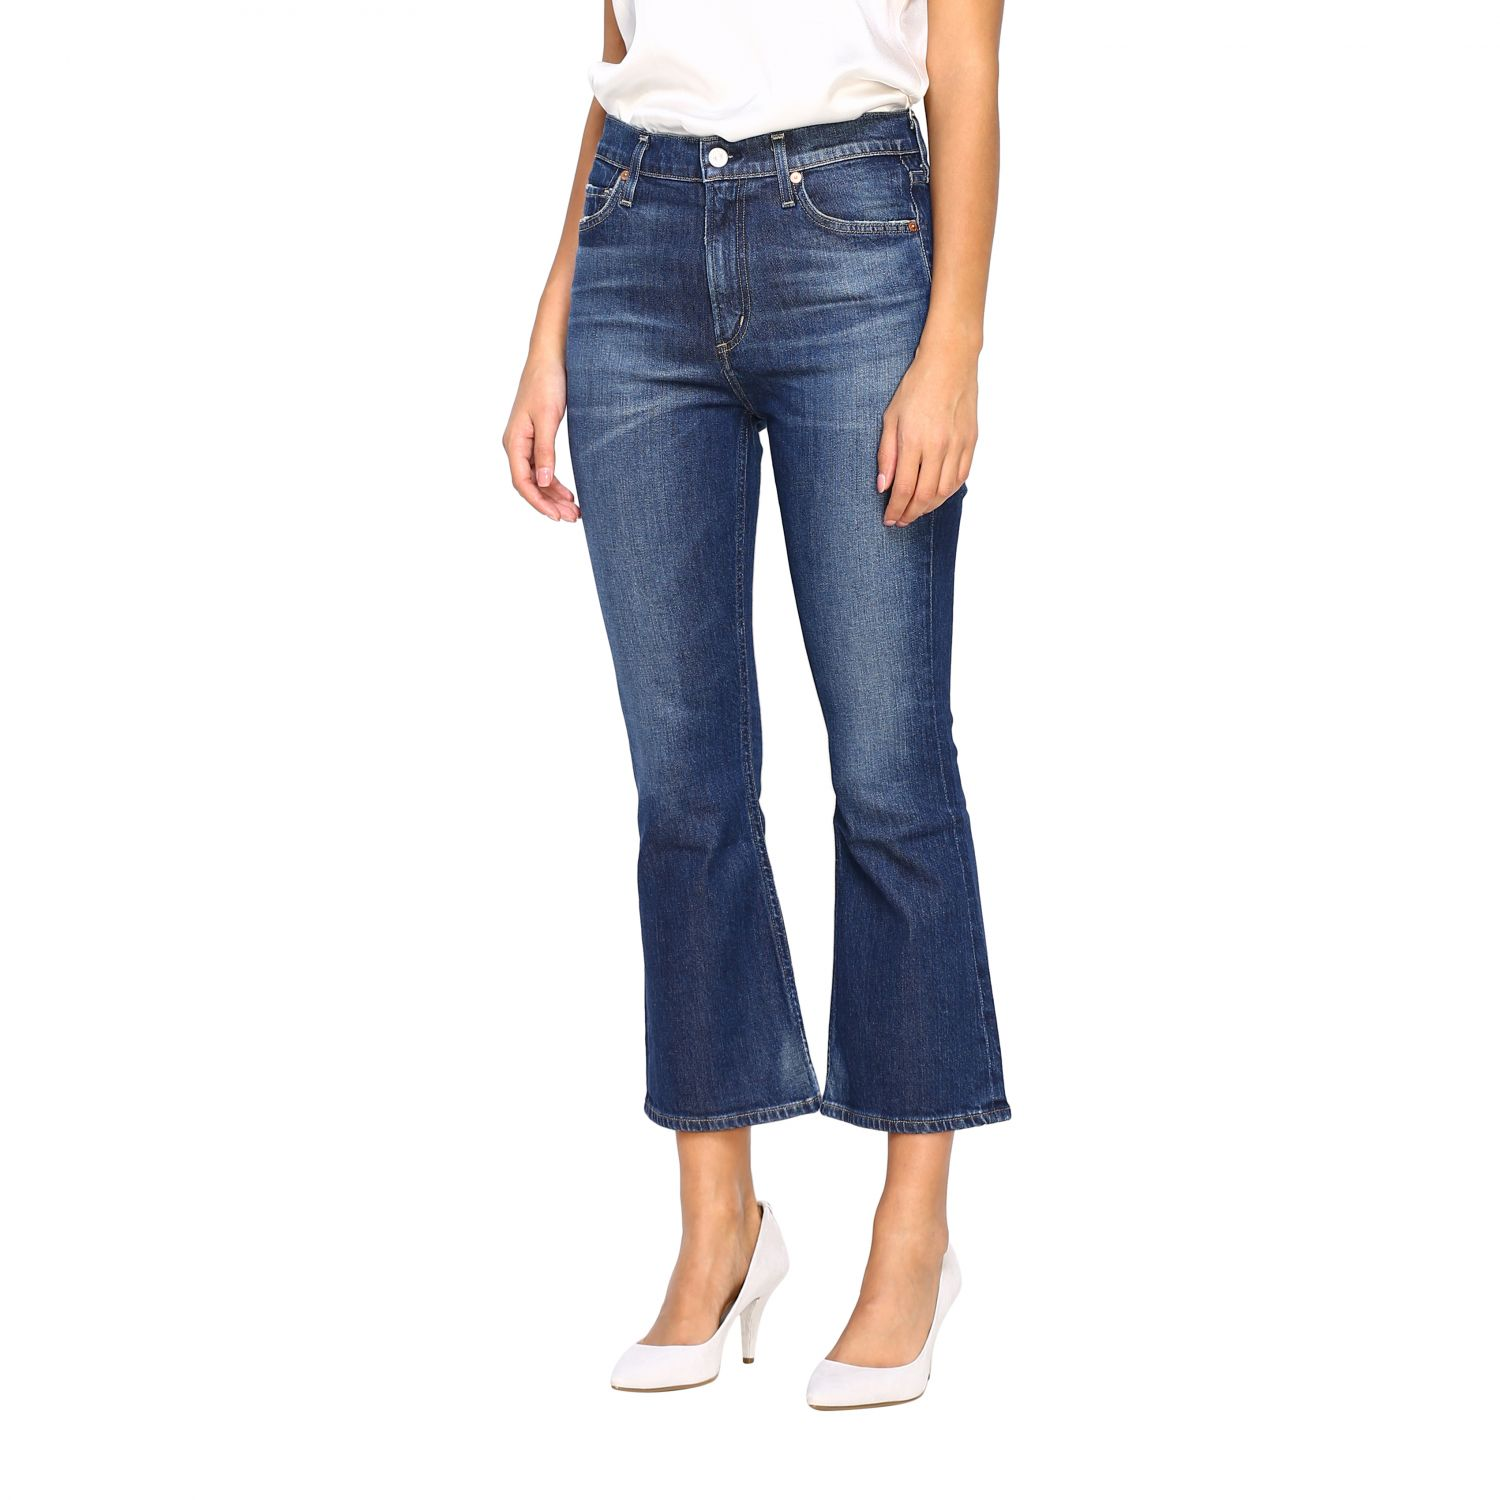 Jeans Citizens Of Humanity: Jeans femme Citizens Of Humanity bleu 4